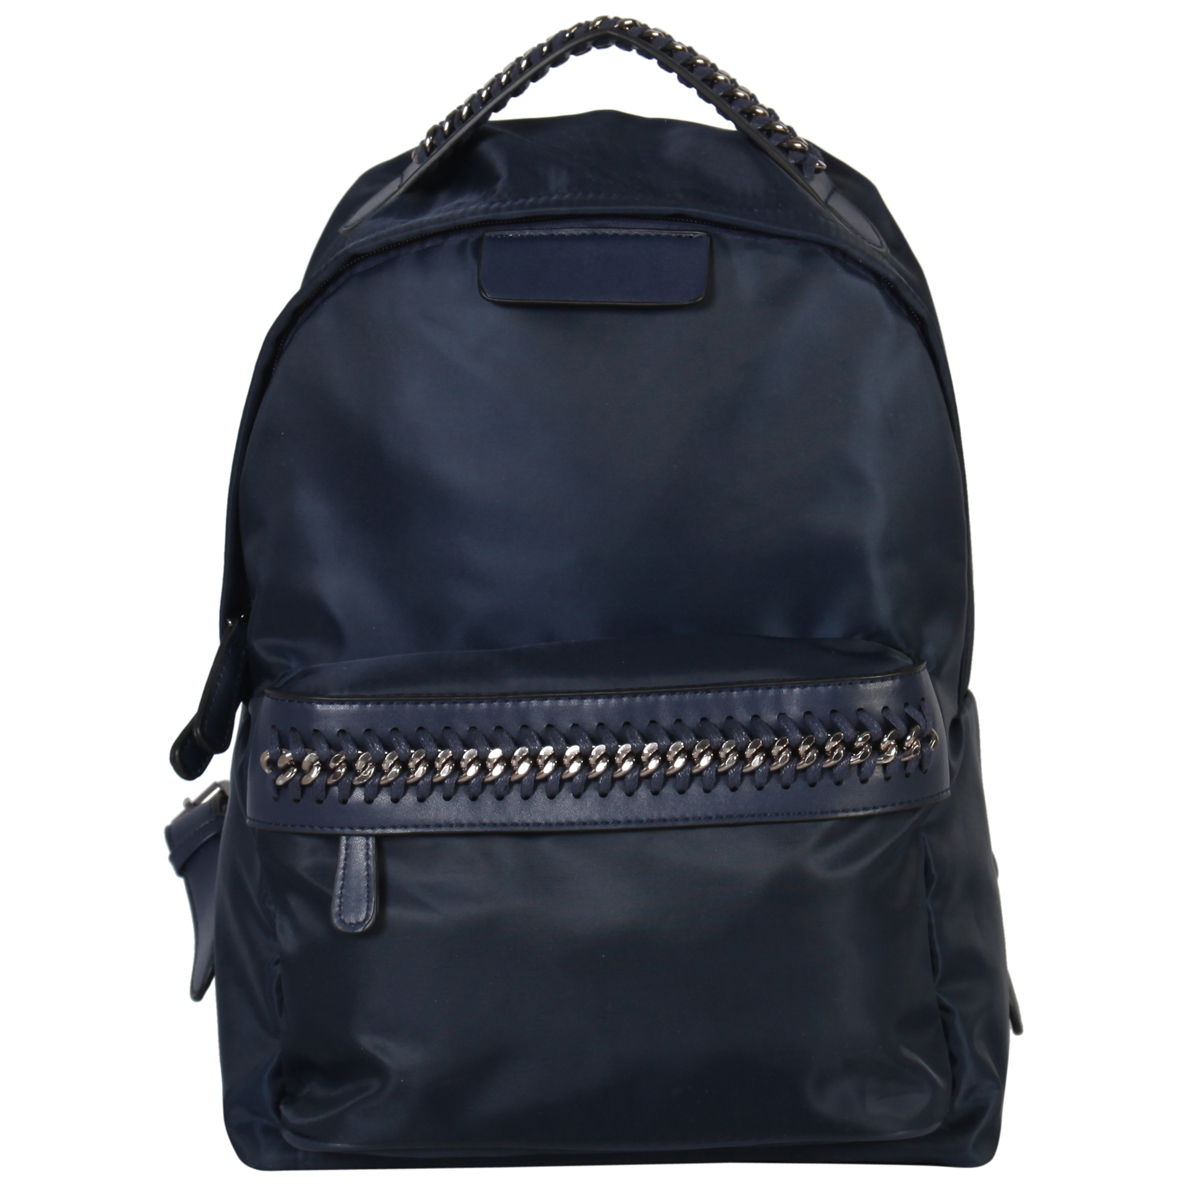 Nylon Material Medium size Backpack with weaved chain belted deco in front